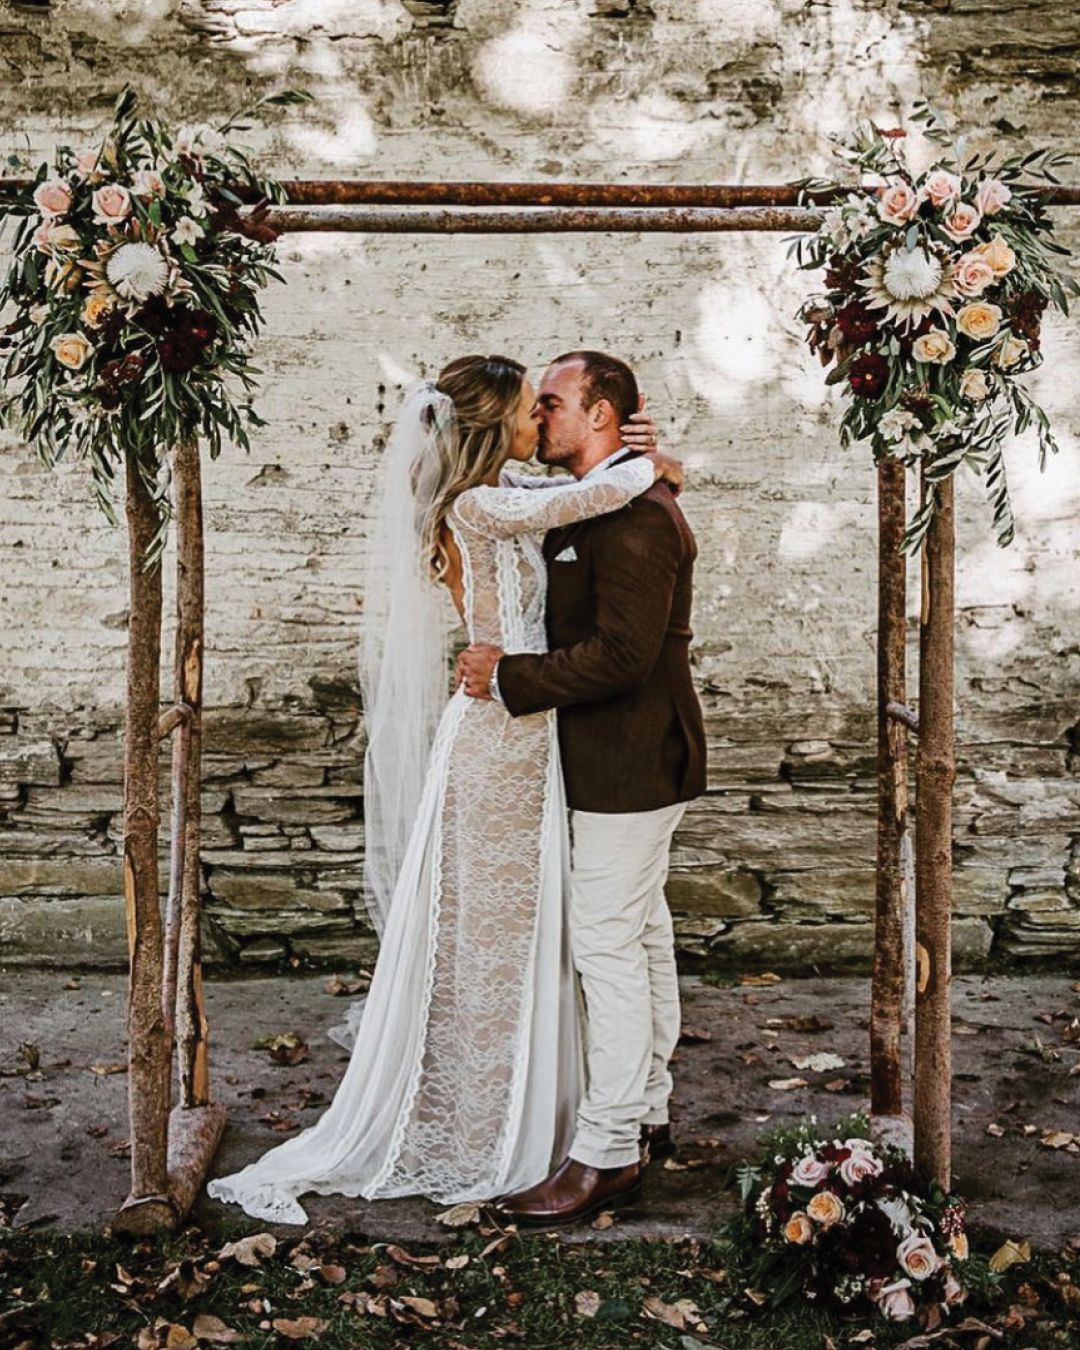 Inca Gown Low Back Wedding Dress Grace Loves Lace Professional Wedding Photography Outdoor Wedding Photography Digital Wedding Photography